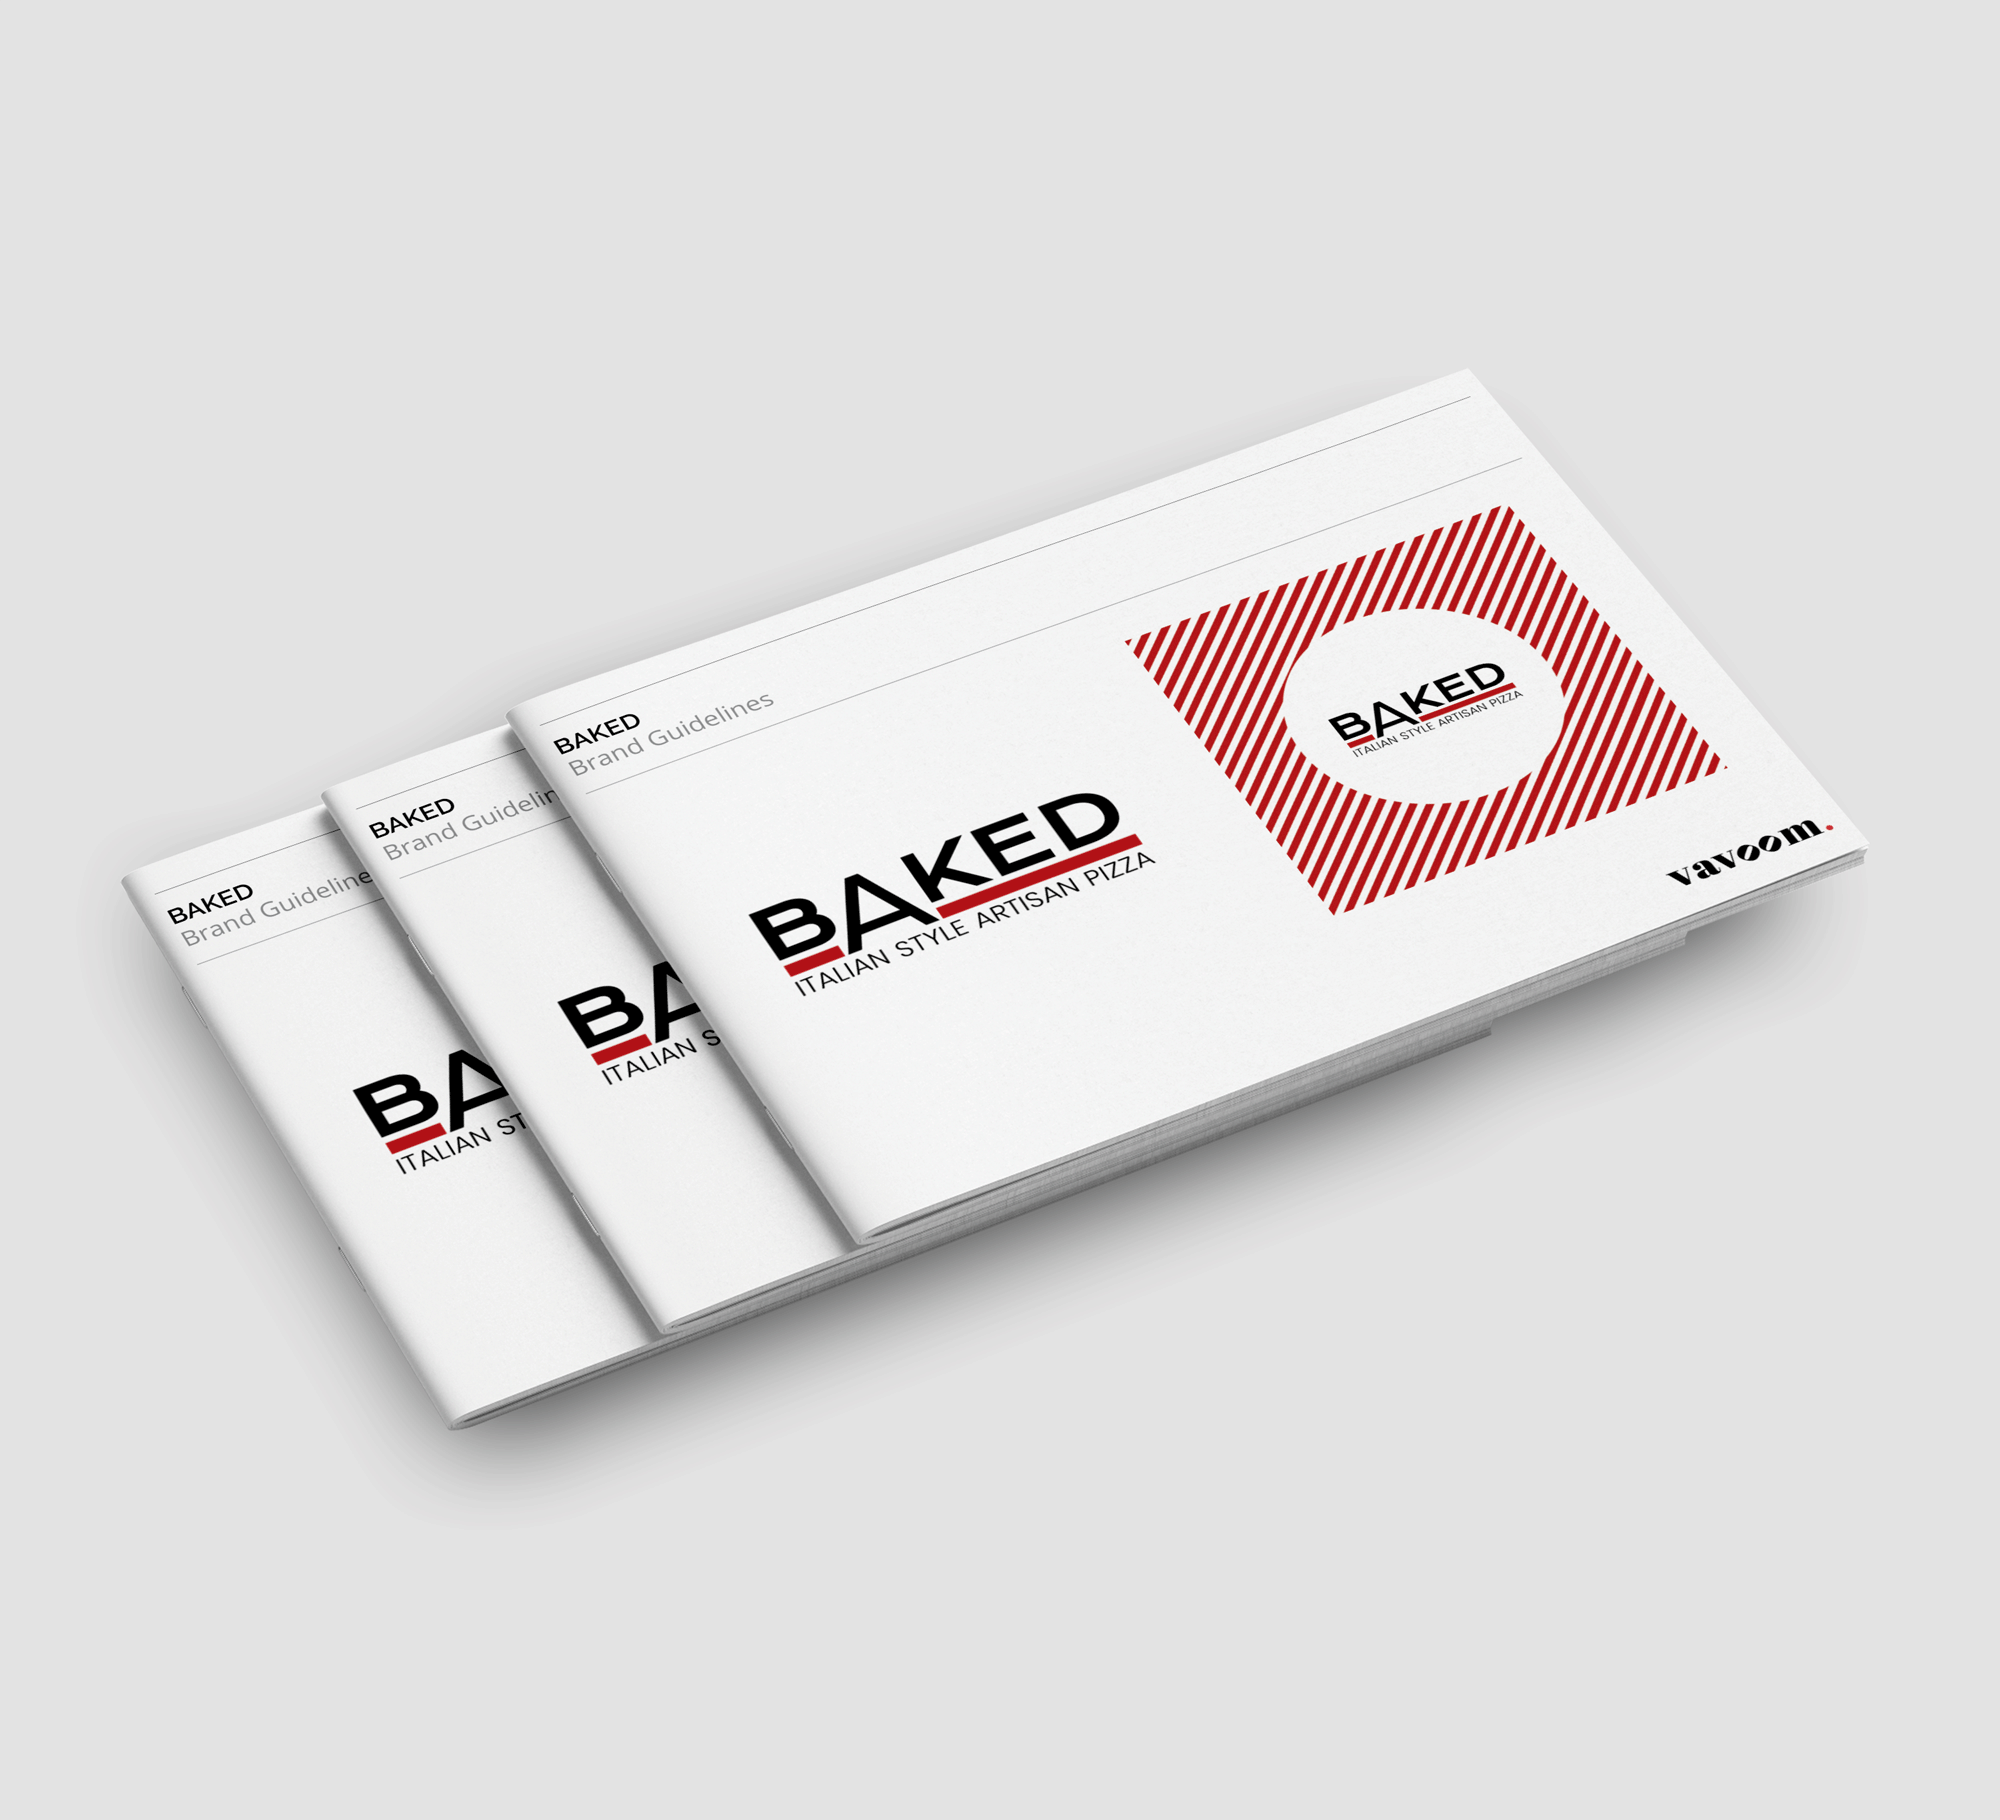 baked_brand_identity_cover_grey